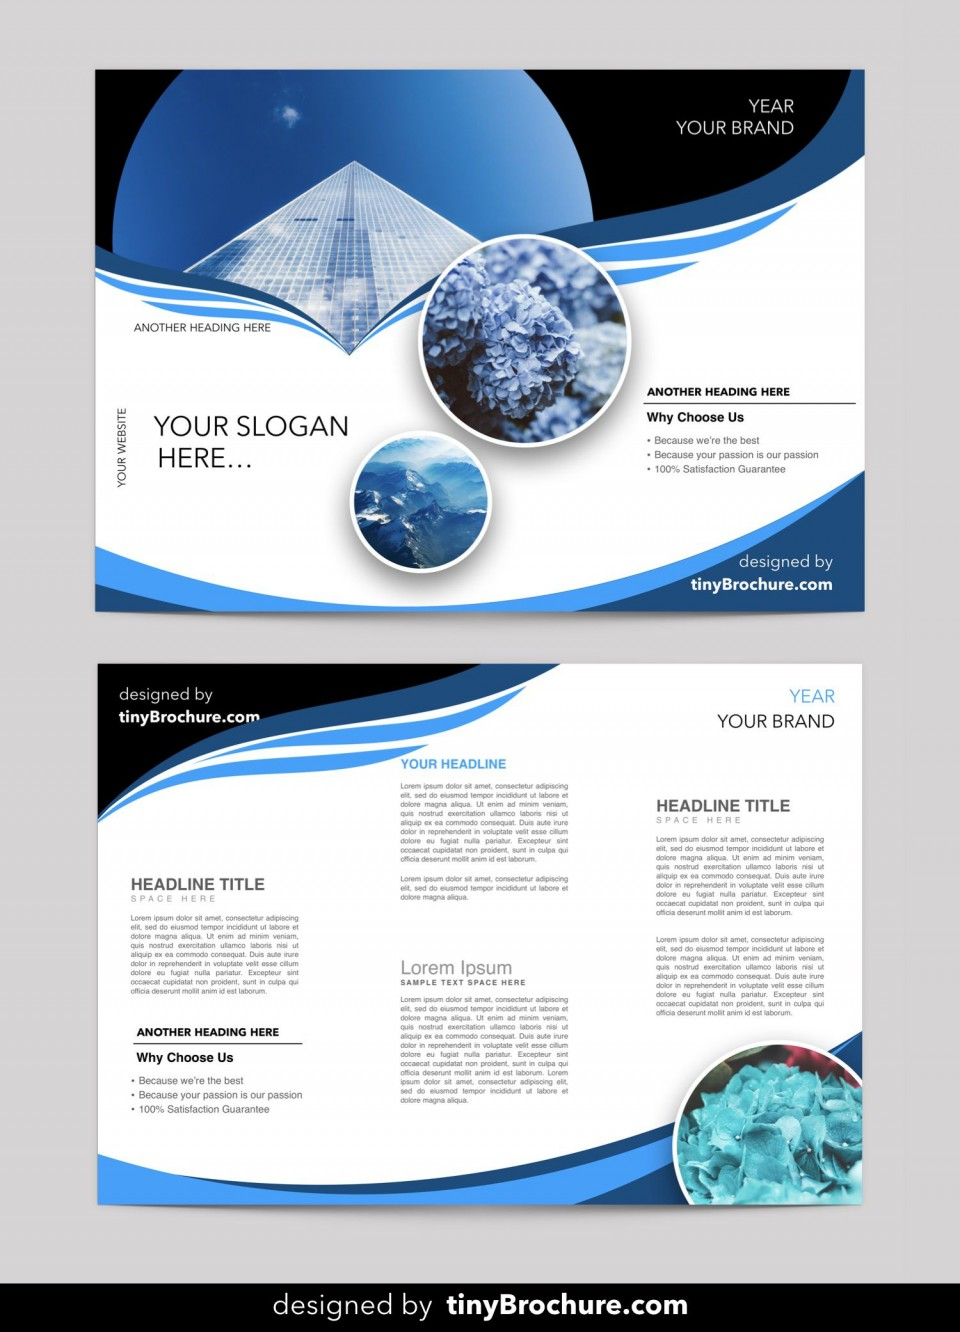 002 Dreaded Brochure Template Free Download Design  For Word 2010 Microsoft Ppt960